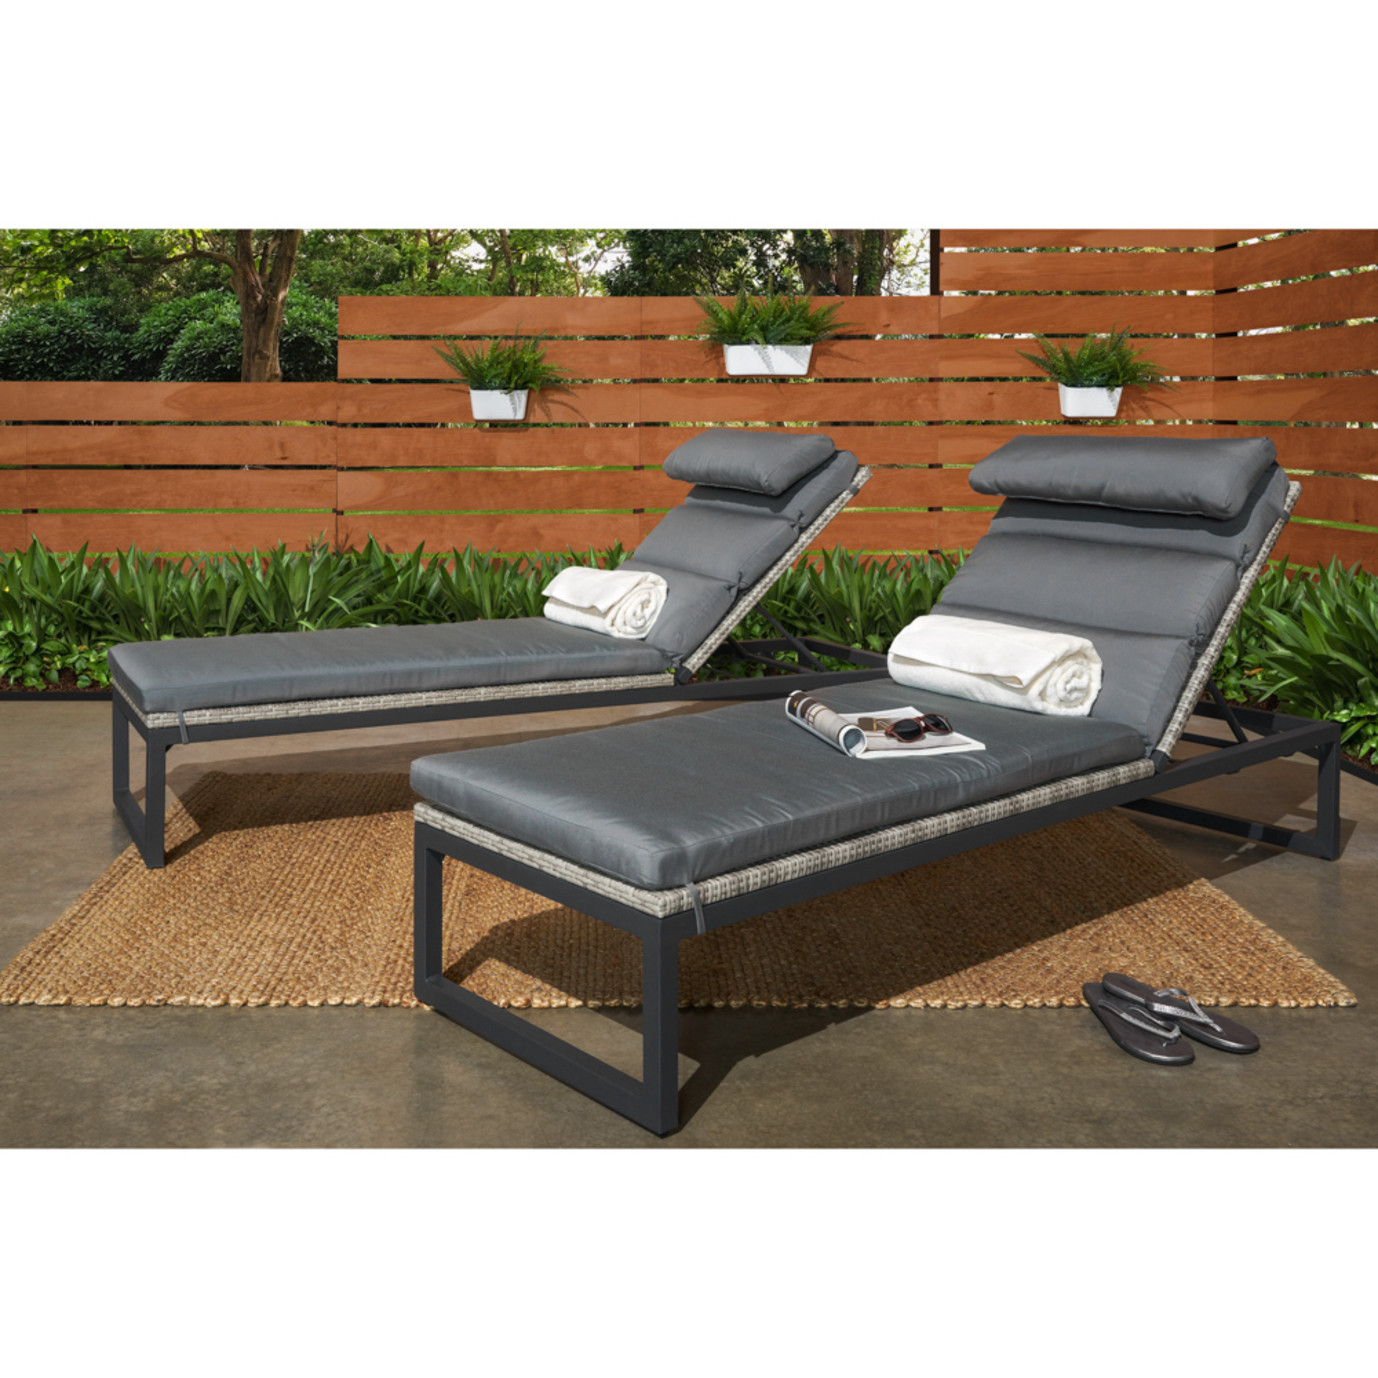 Milo™ Gray Chaise Lounges - Charcoal Gray